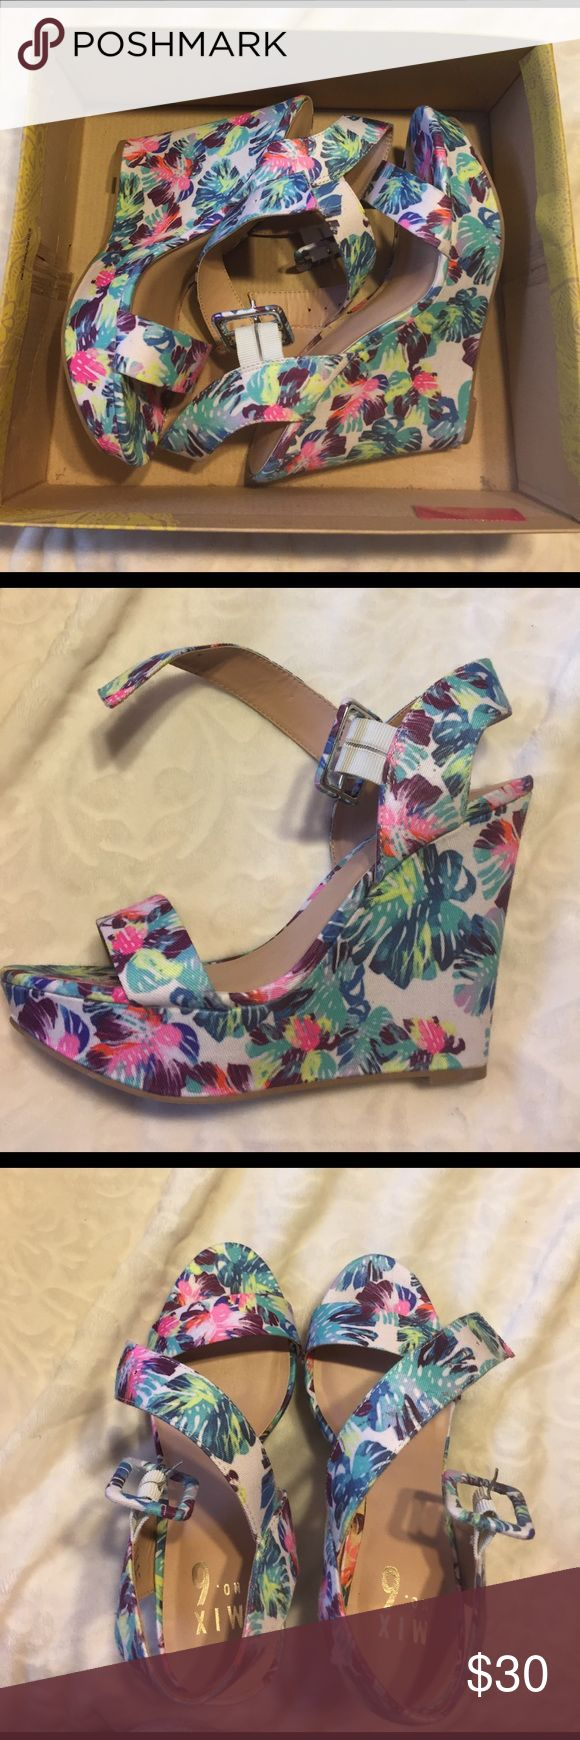 Floral wedge heels Adorable heels just in time for spring. Platform. Brand new, never worn Shoes Wedges